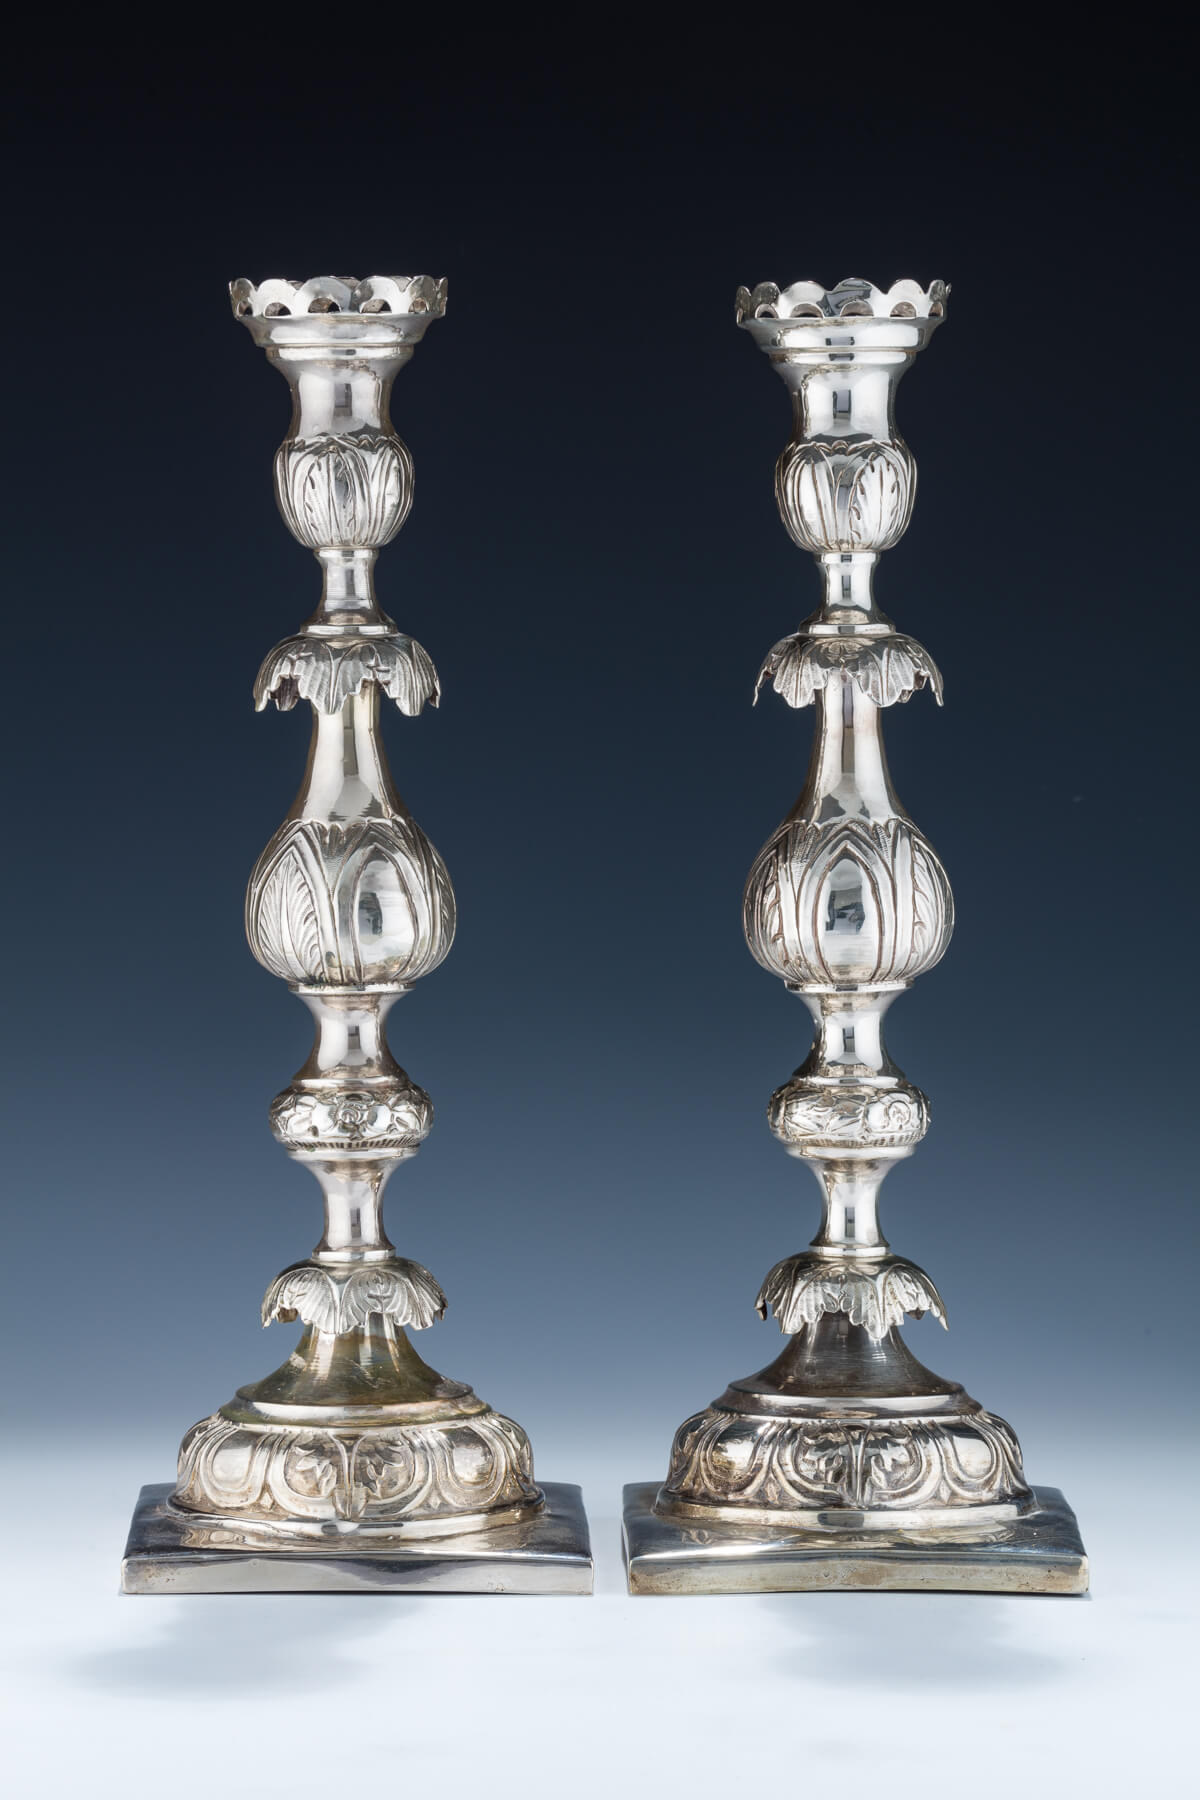 8. A Pair of Large Silver Candlesticks by Shmuel Skarlat